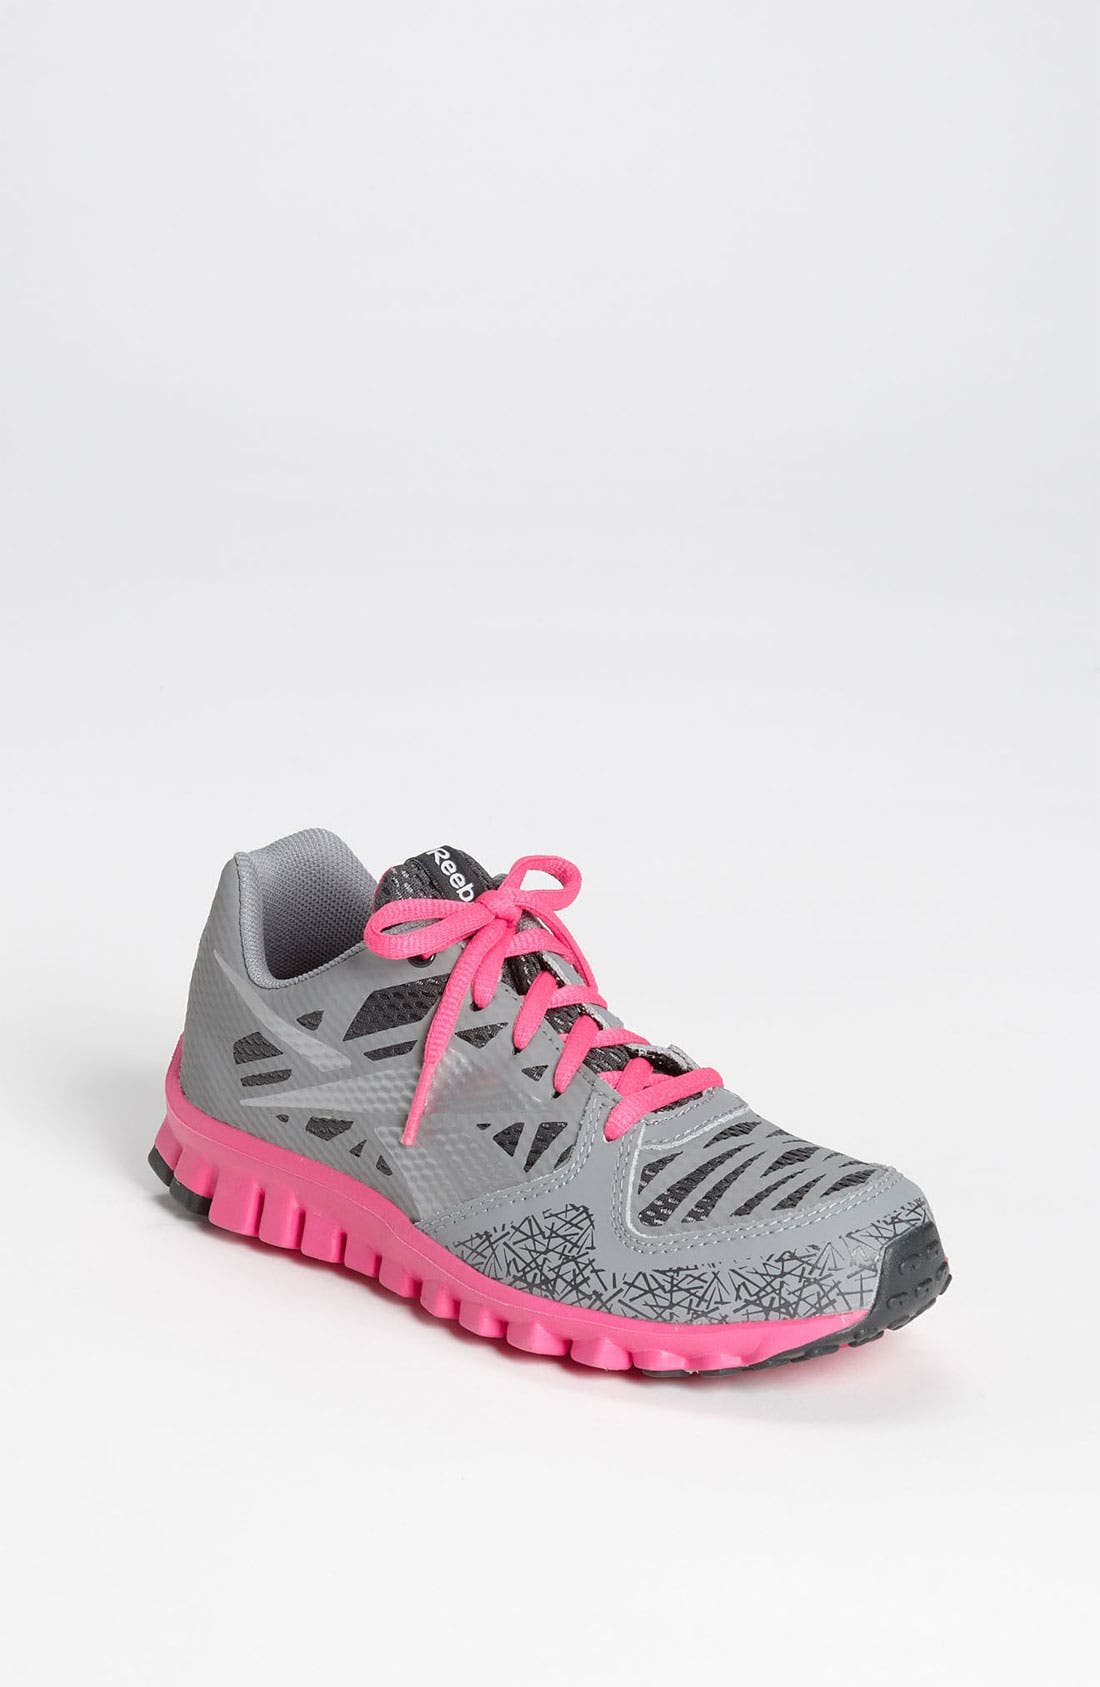 Main Image - Reebok 'RealFlex Transition 2.0' Sneaker (Toddler, Little Kid & Big Kid)